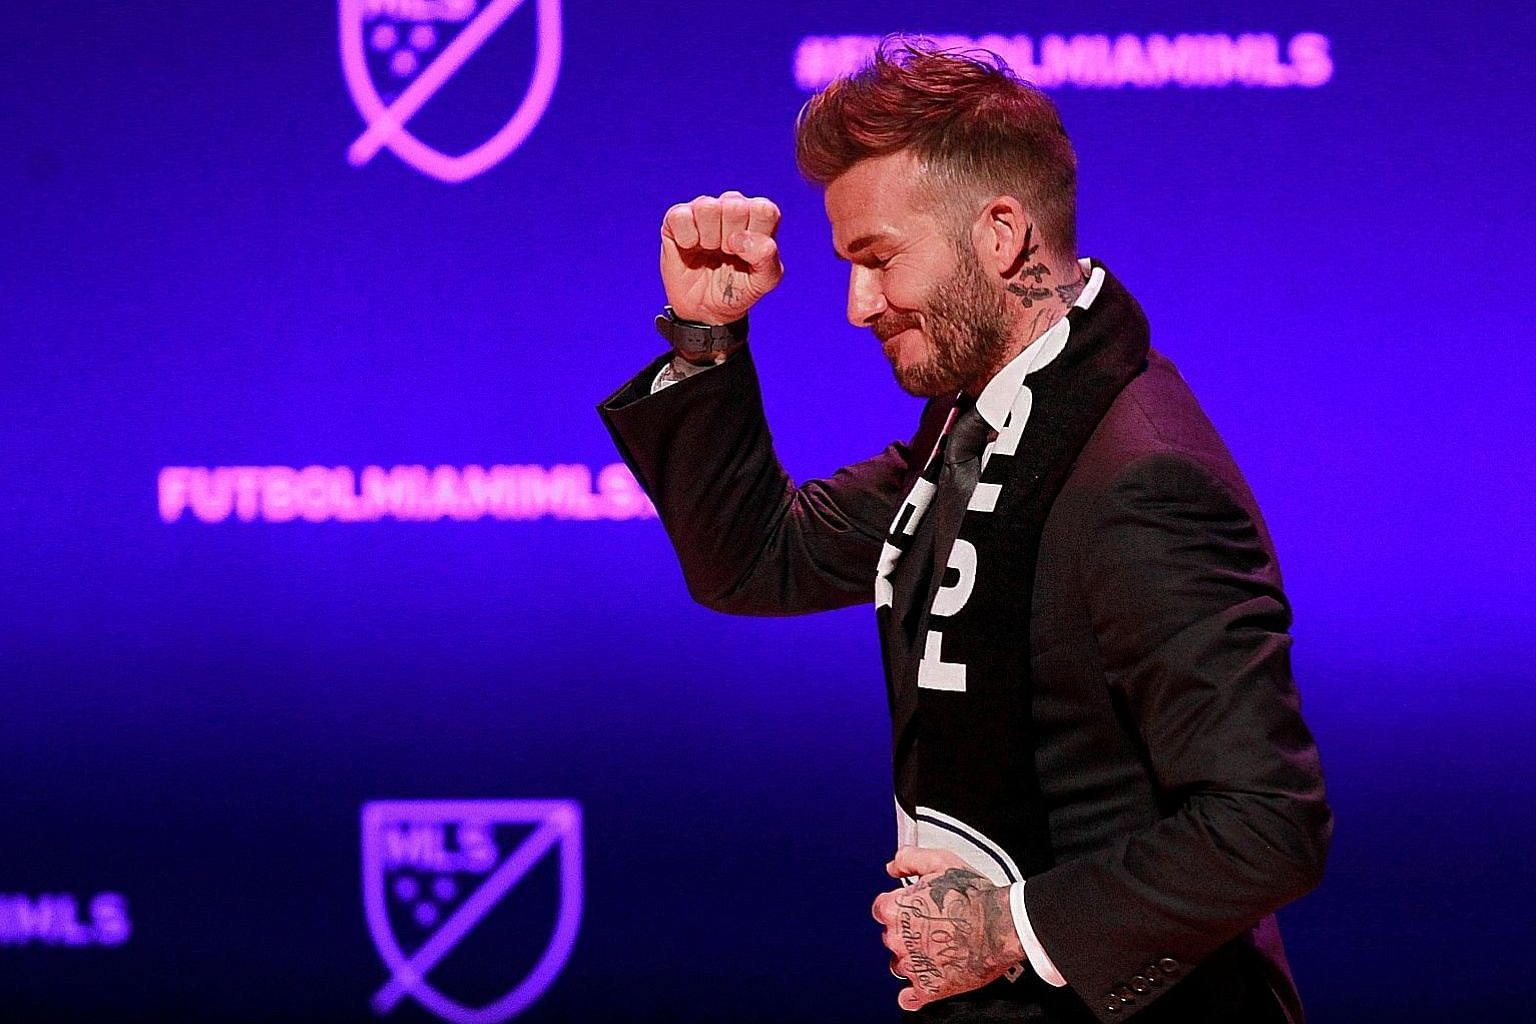 David Beckham salutes the crowd at the launch of his Major League Soccer team in Miami, after four years of wrangling over a stadium site.